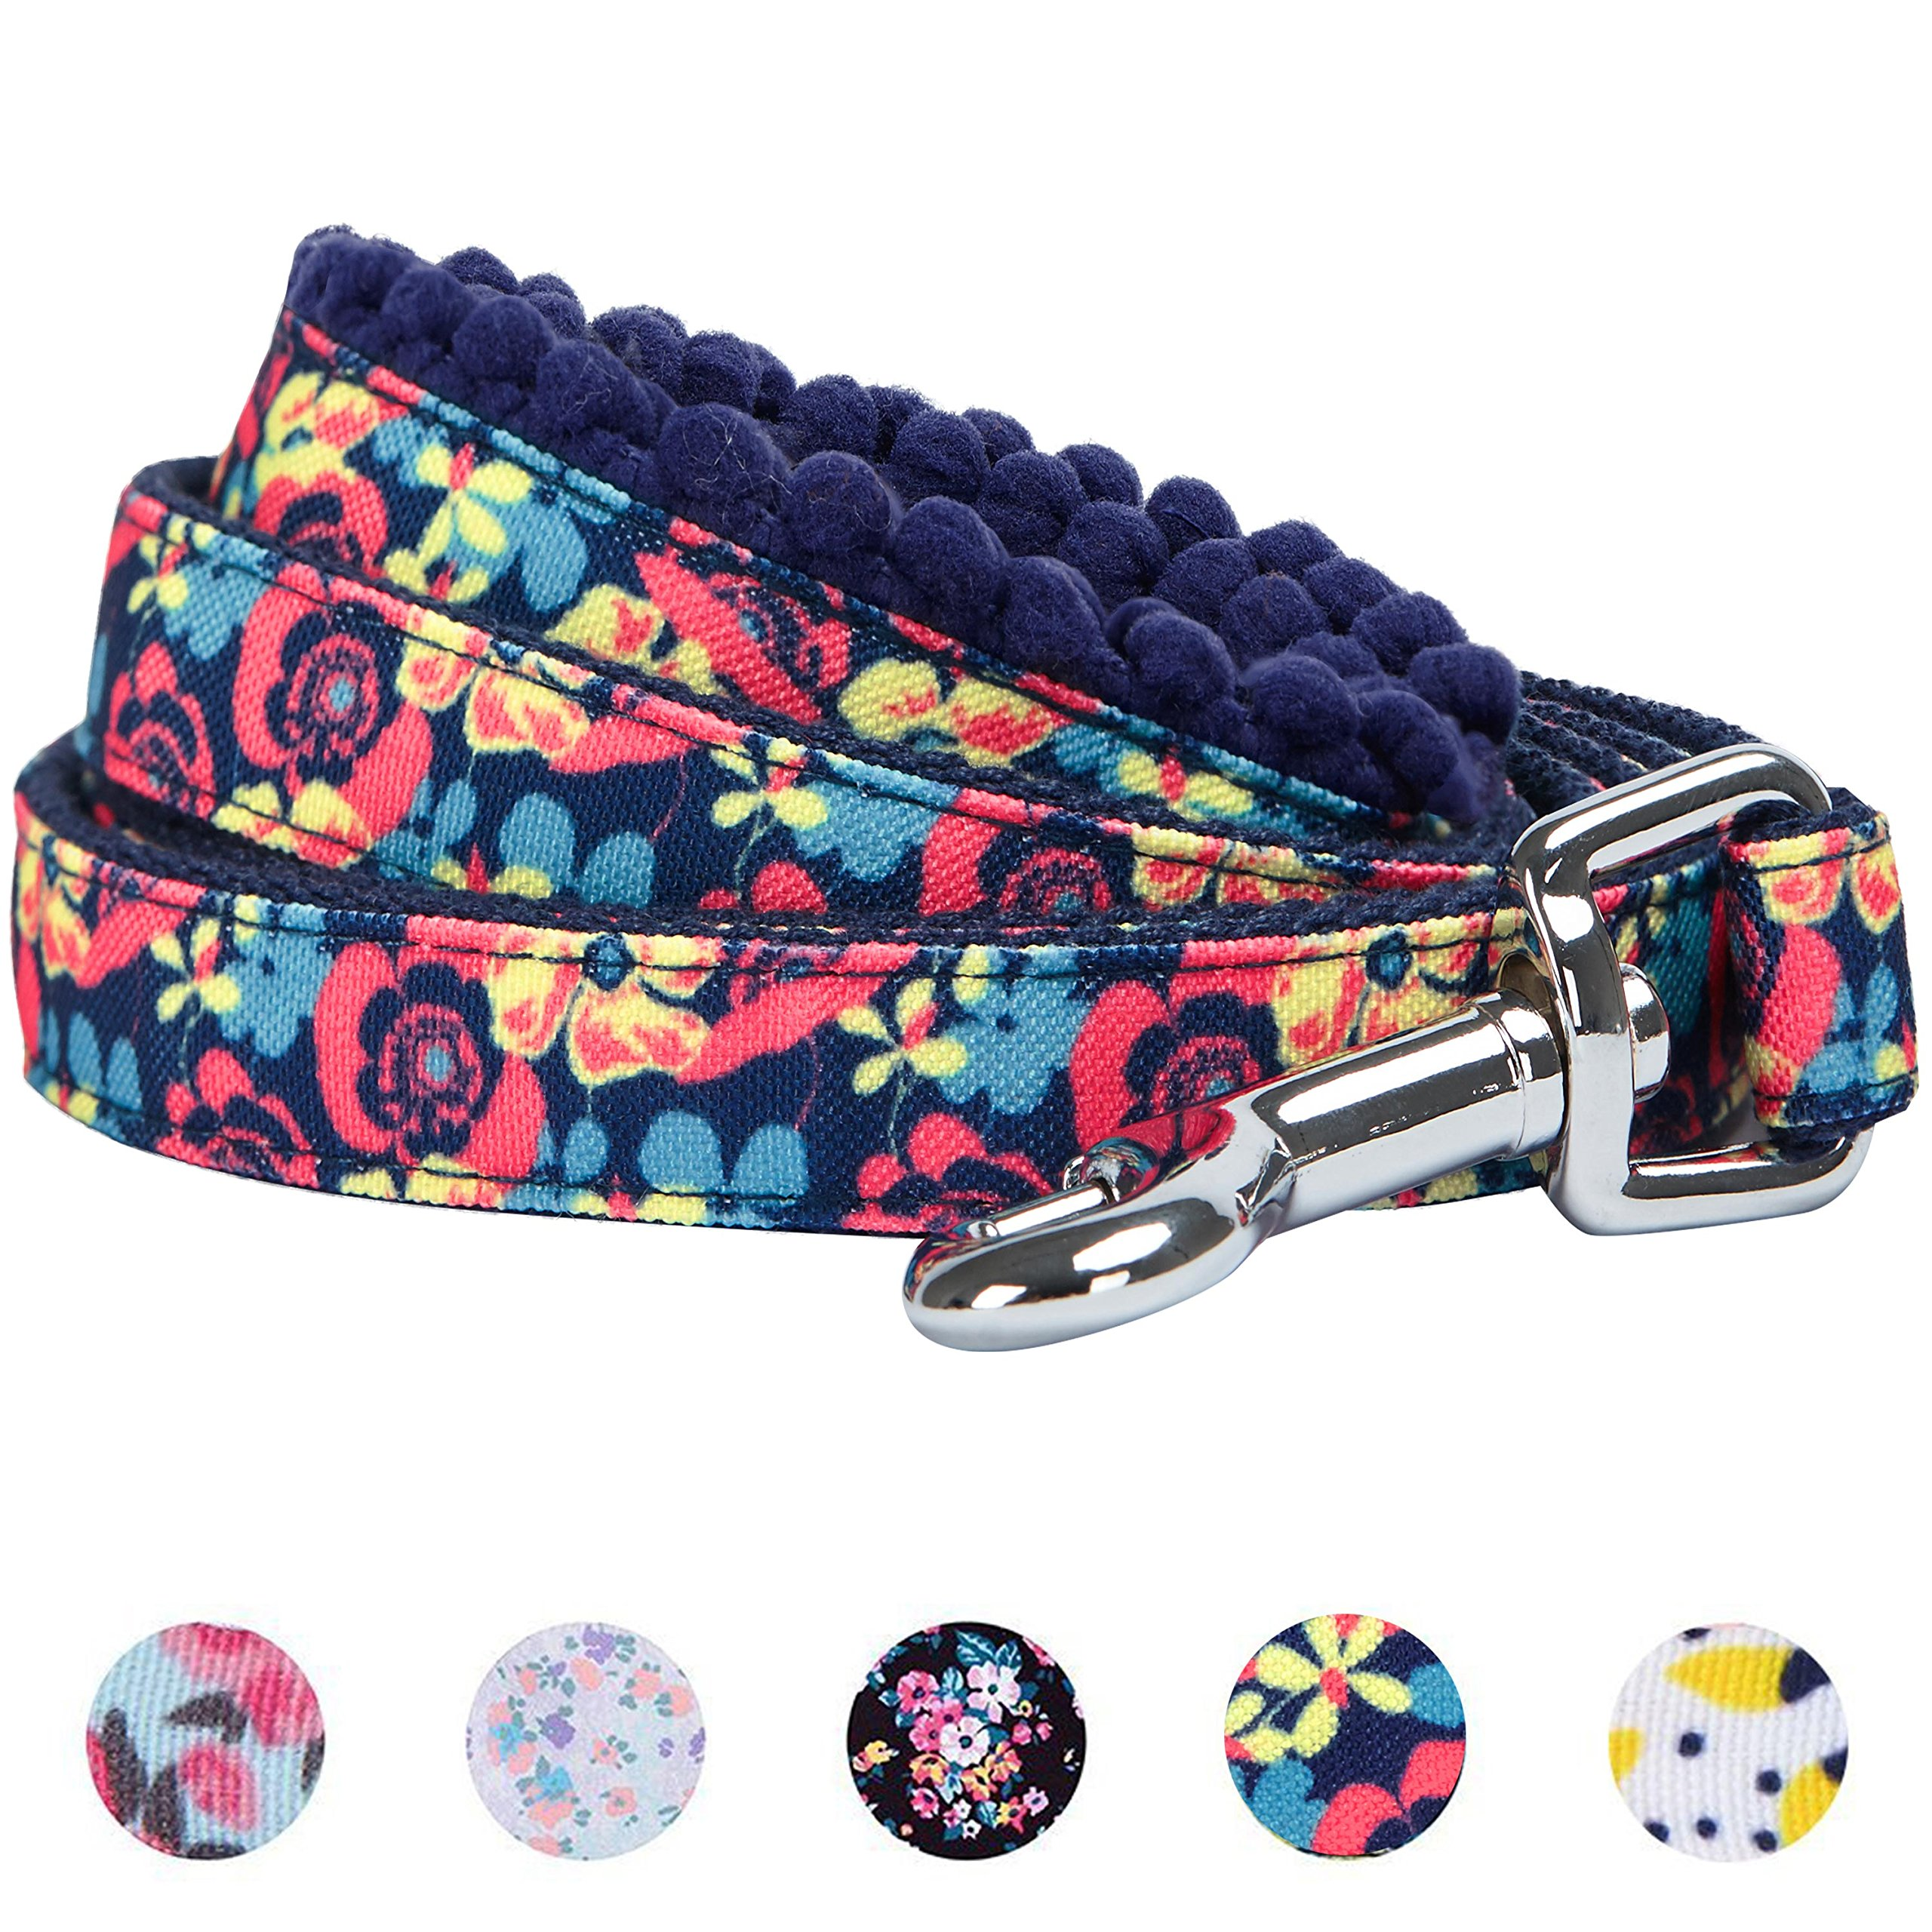 Blueberry Pet 5 Patterns Durable Spring Made Well Profound Floral Print Dog Leash in Navy, 5 ft x 5/8'', Small, Leashes for Dogs